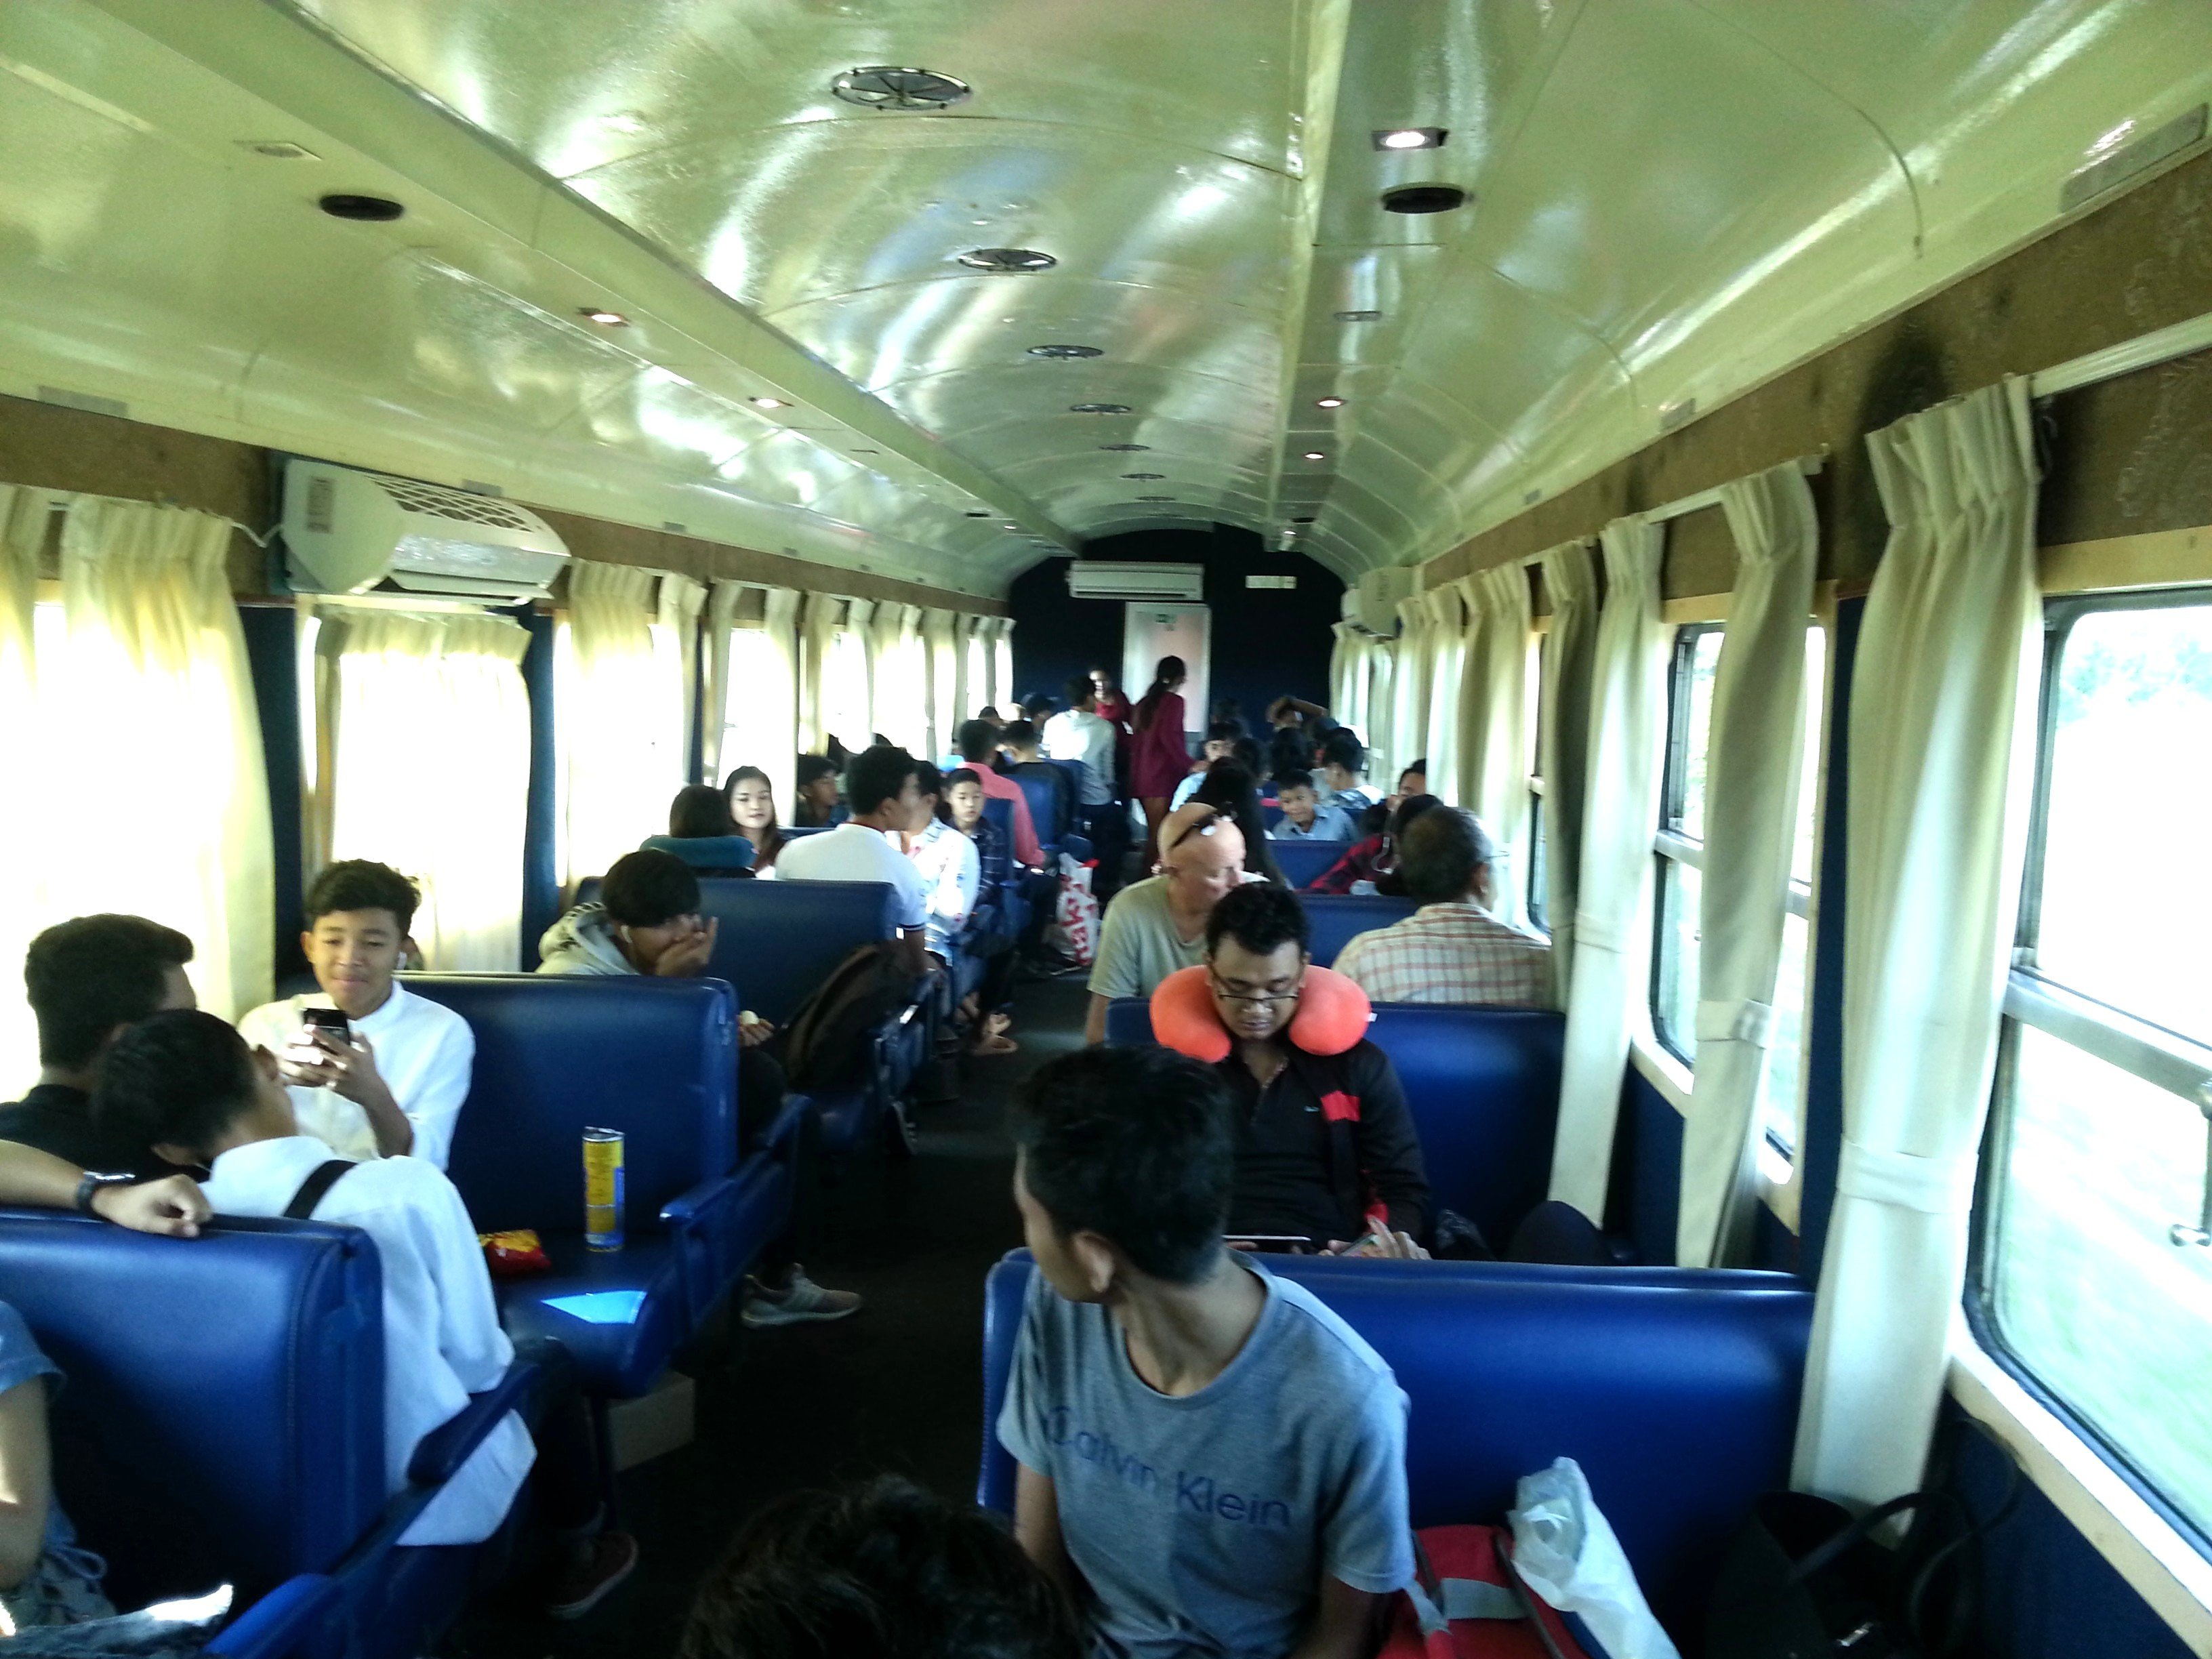 The train to Sihanoukville is popular with Cambodian holidaymakers